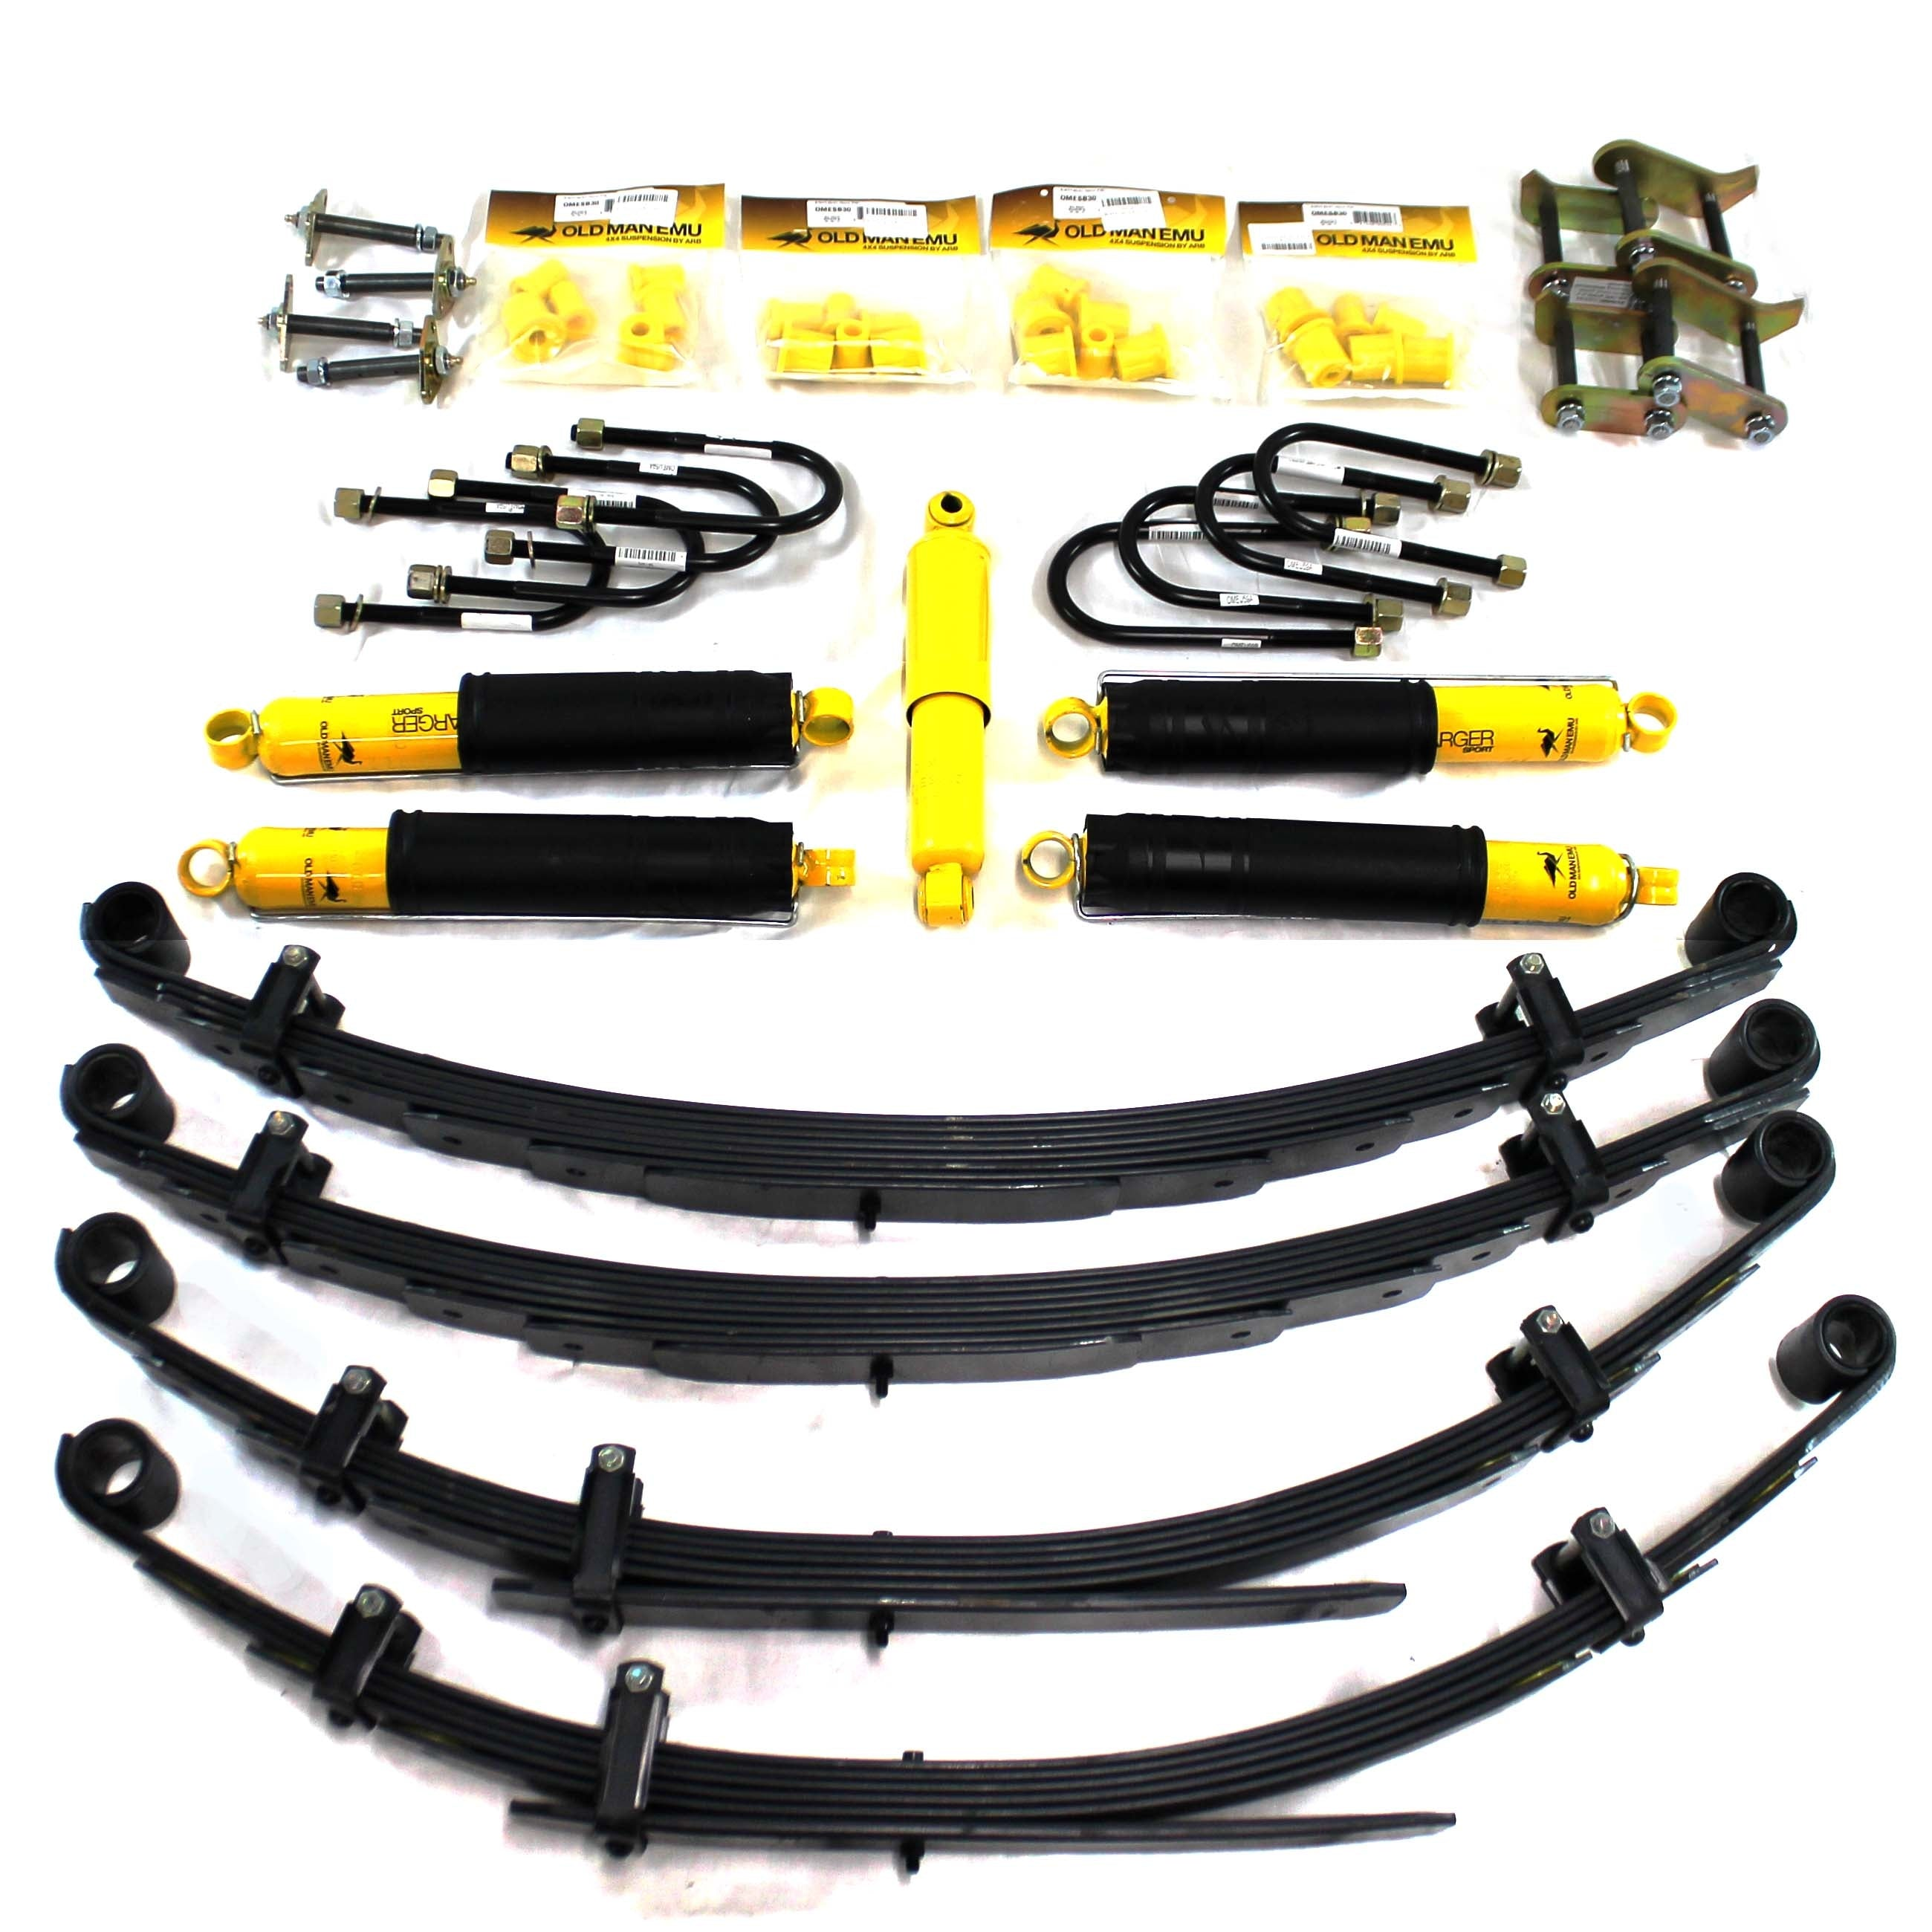 Arb Ome Fj40 Lift Kit 2 Light Load W Shackle And Pins Wiring Harness Lighting